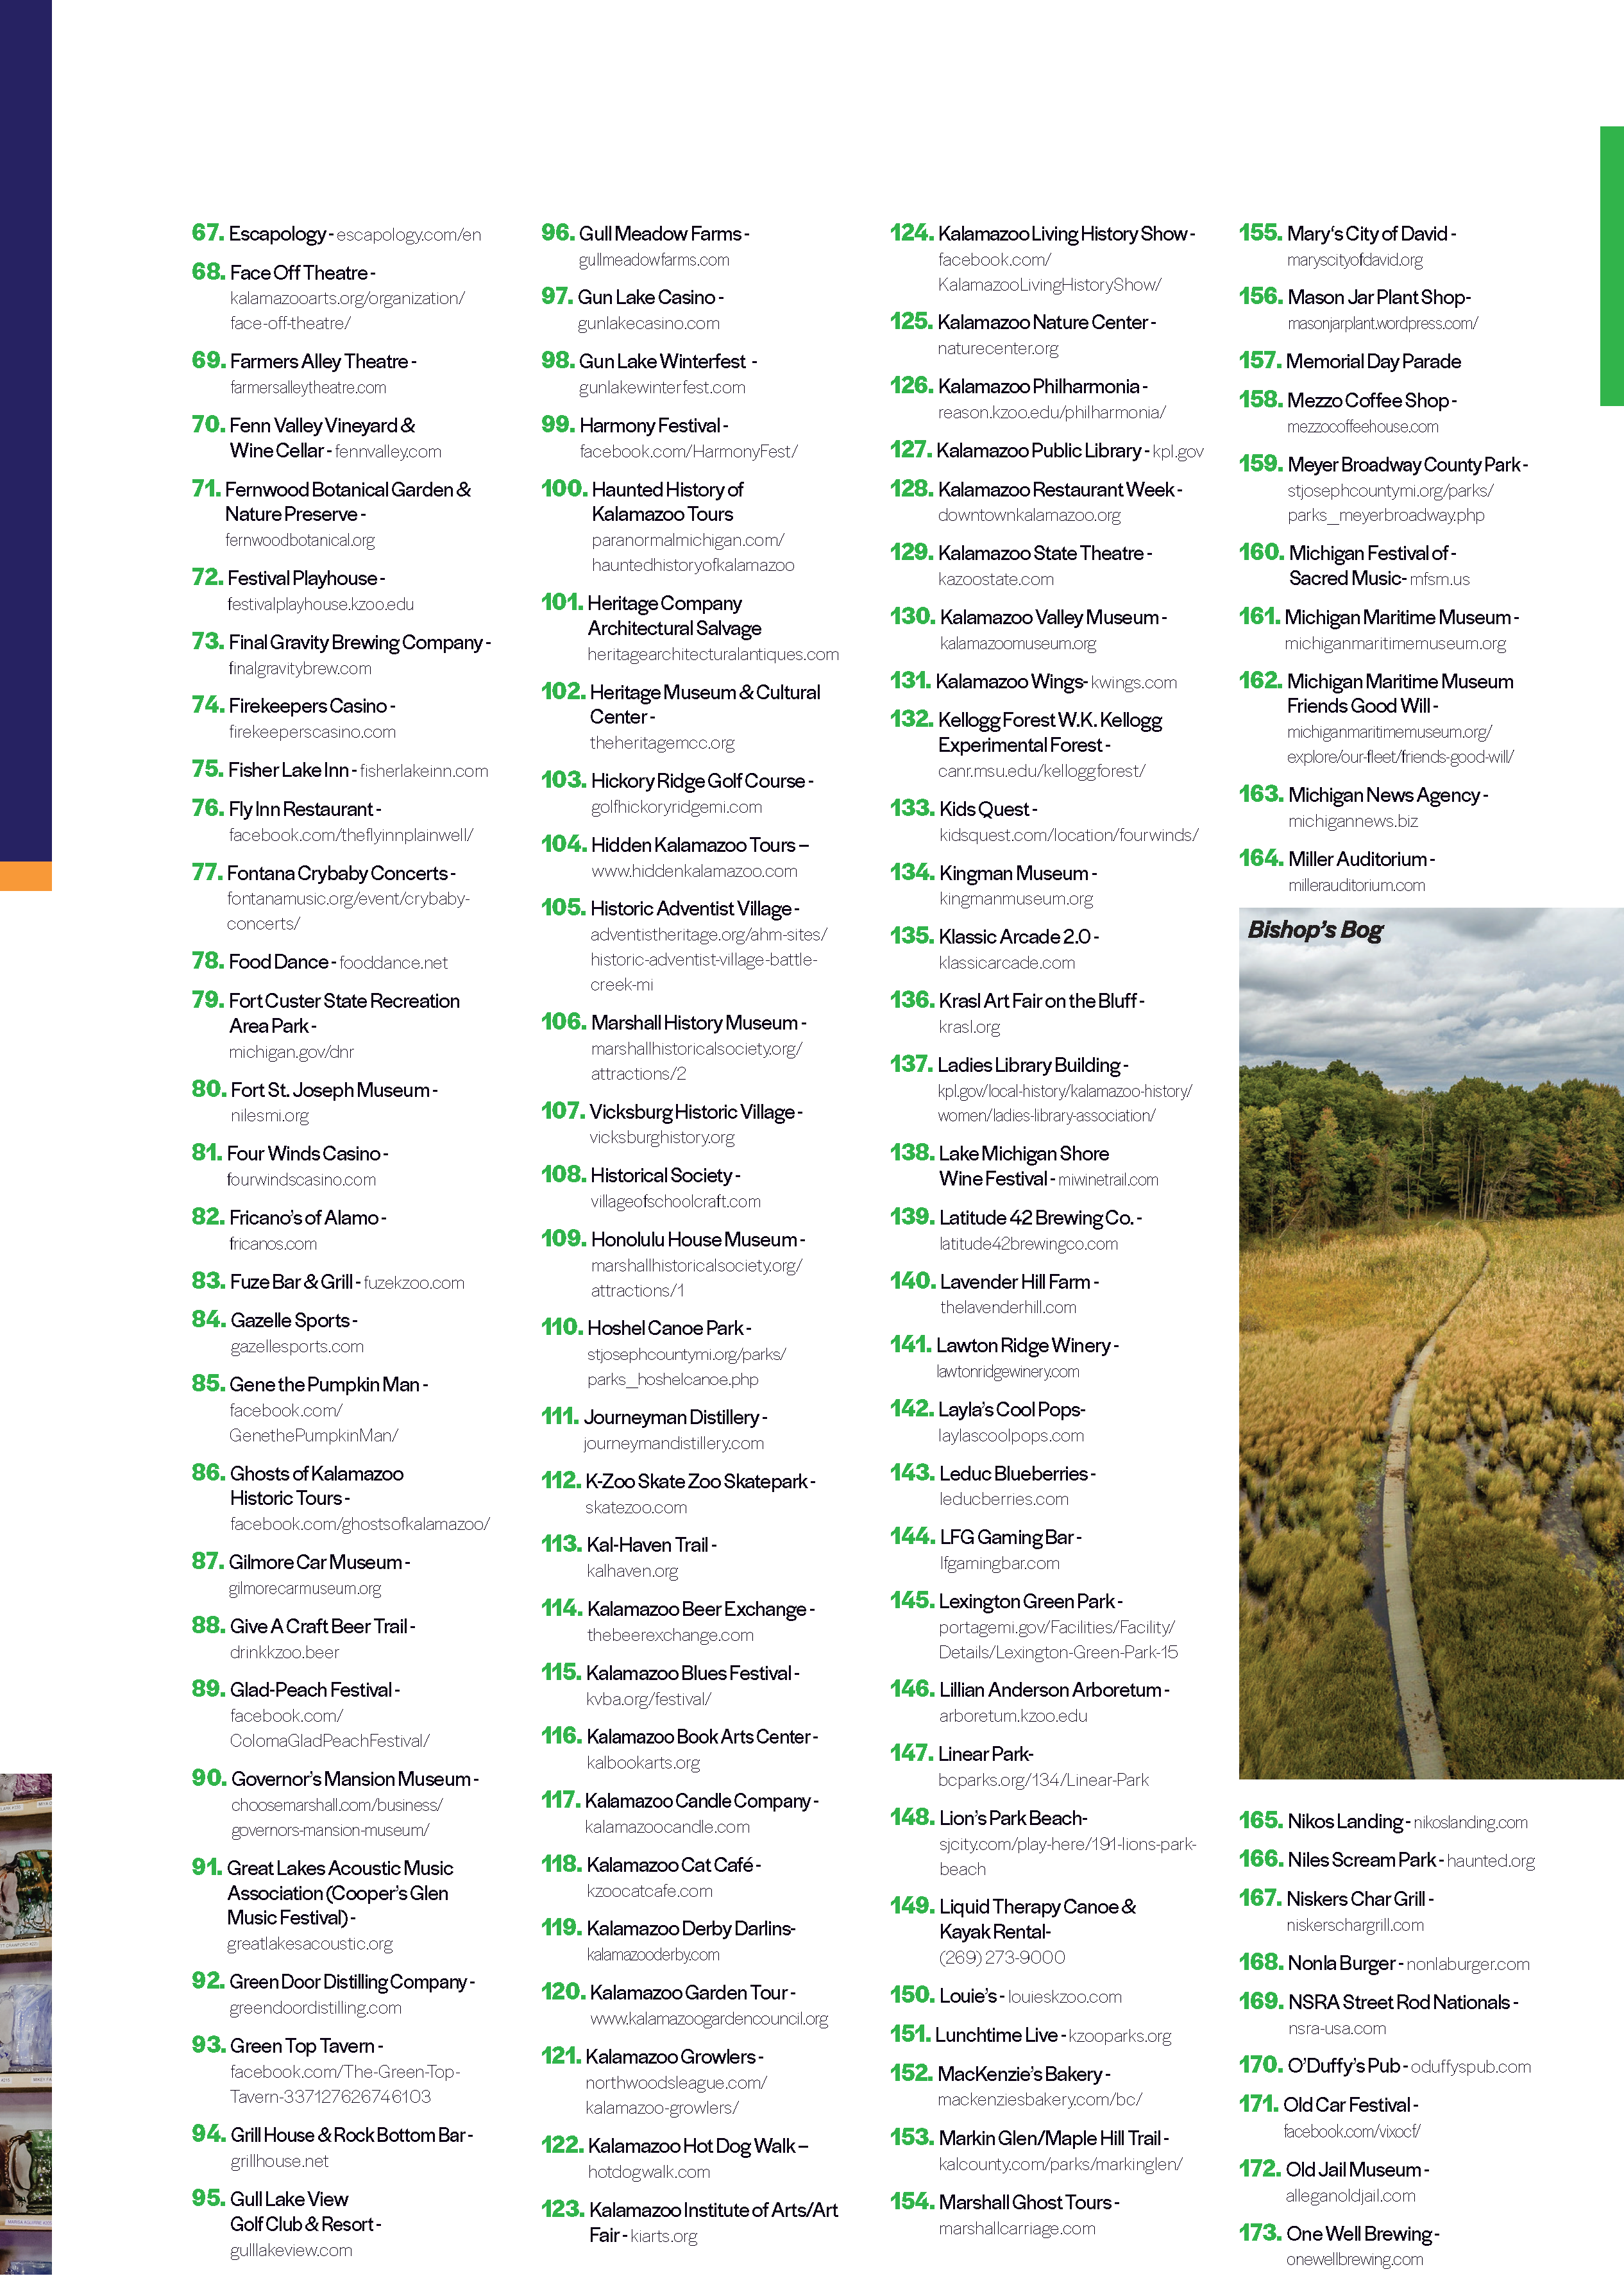 269 List from Travel Guide_Page_2